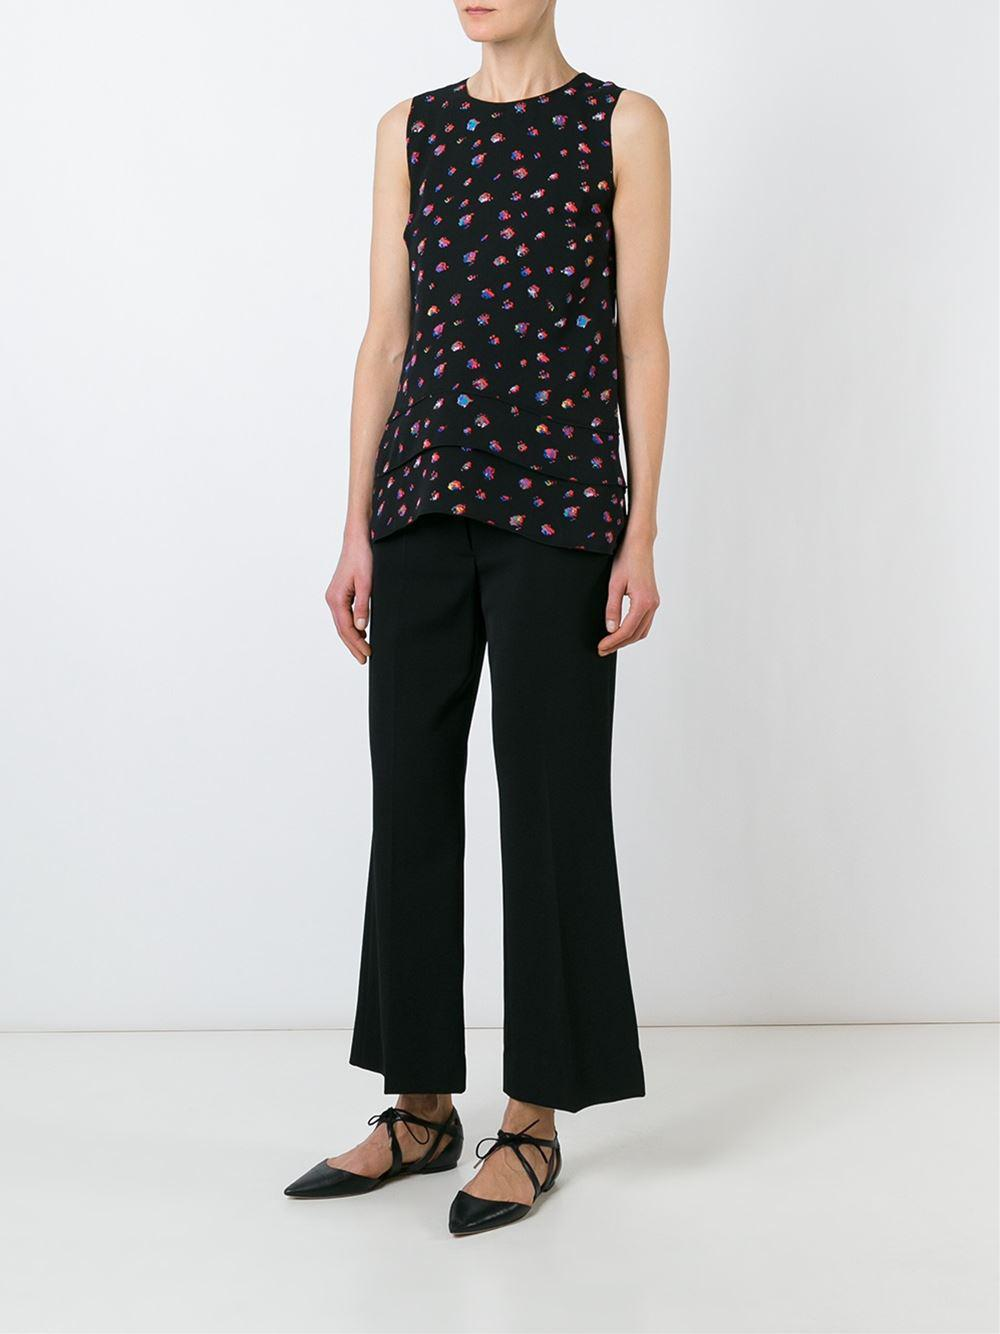 Proenza Schouler Silk Sleeveless Floral Blouse in Black